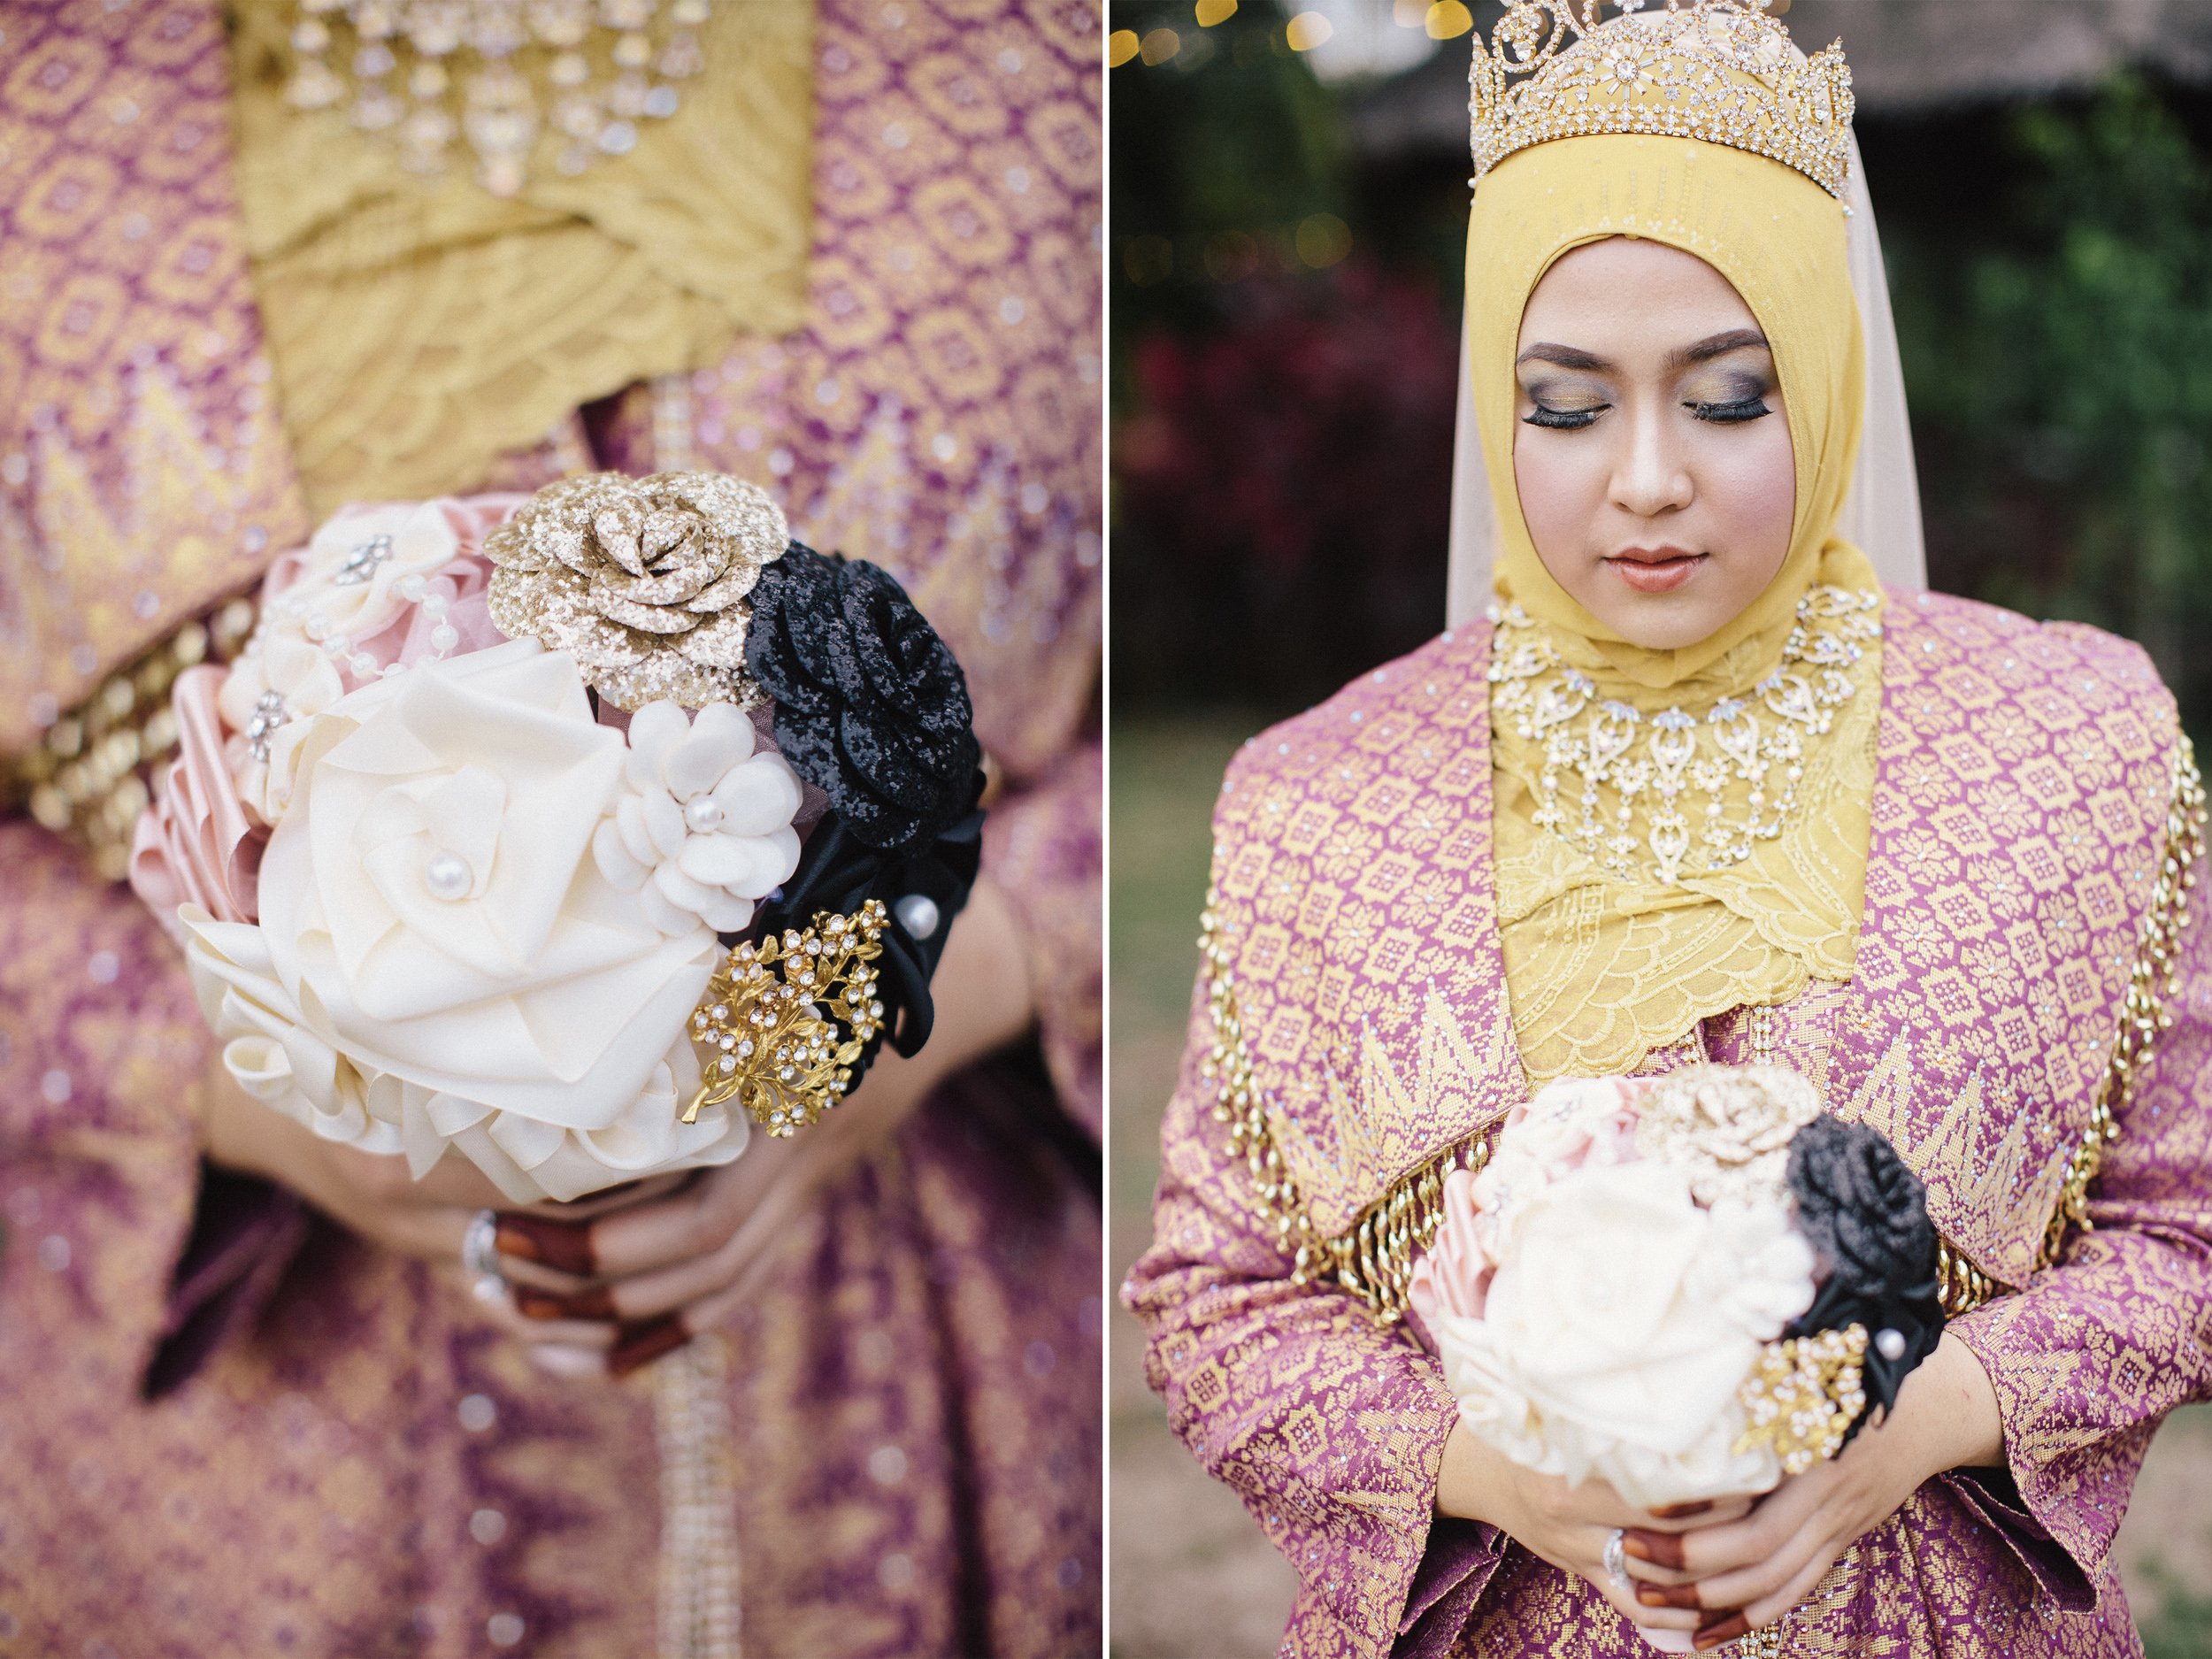 singapore-wedding-photographer-wemadethese-aisyah-helmi-55.jpg